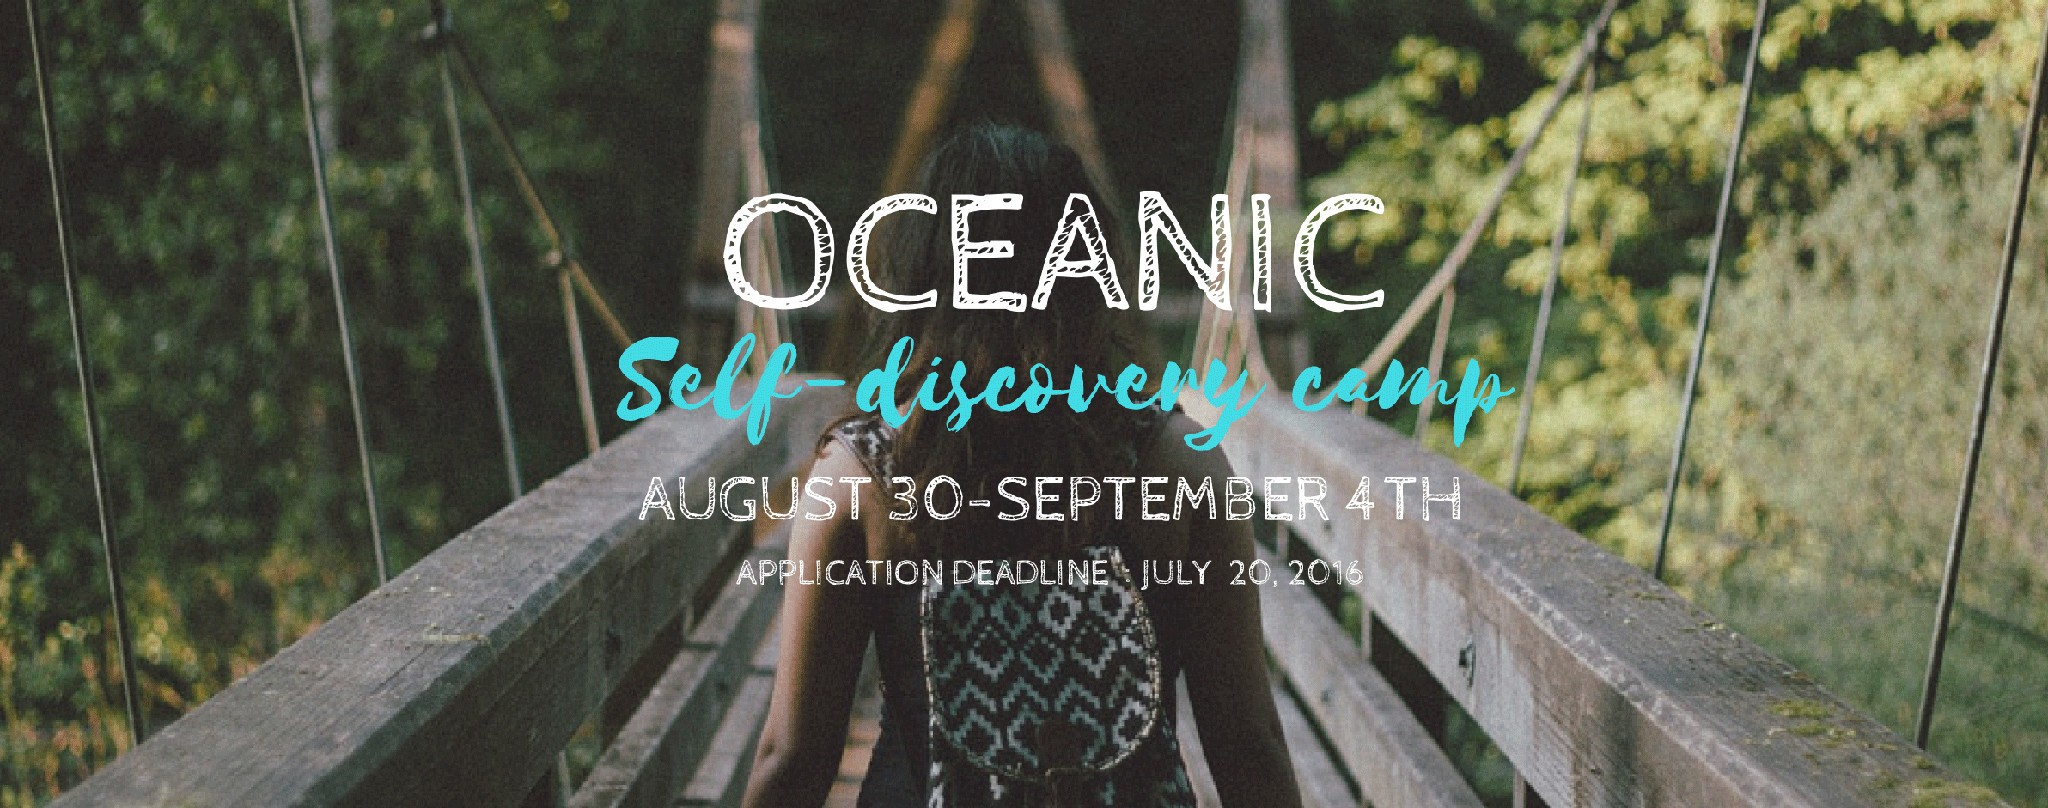 Oceanic Self-Discovery Camp | Peace Revolution